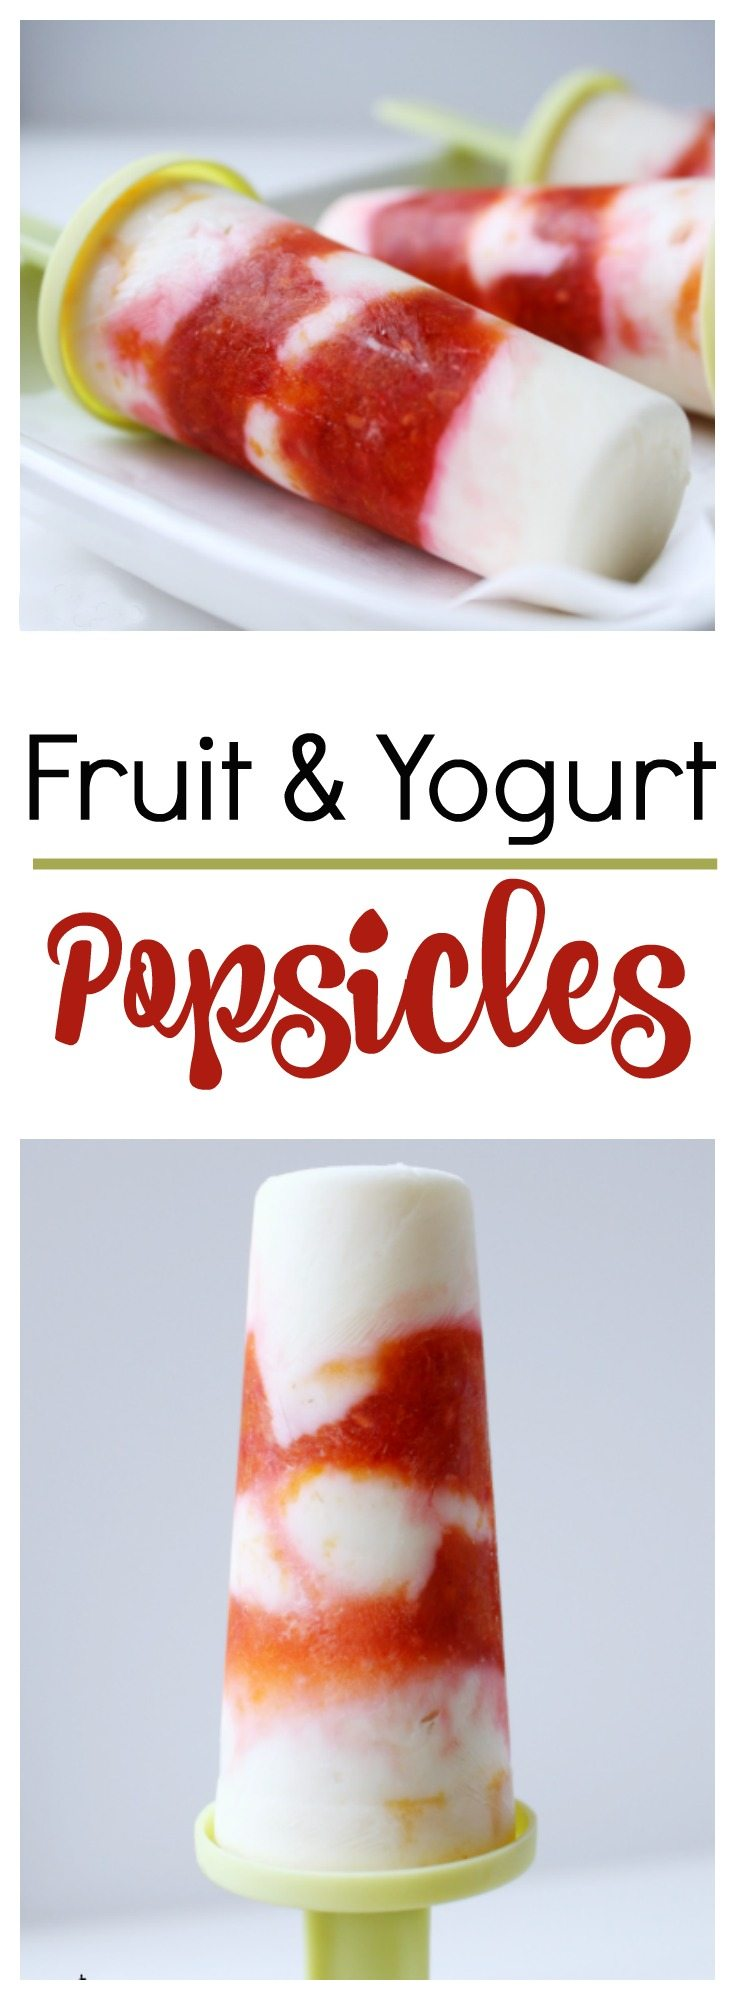 These Fruit and Yogurt Pops are the perfect summertime treat! Mix plain or vanilla yogurt with your favorite fruit to make these easy and refreshing fruit and yogurt popsicles.